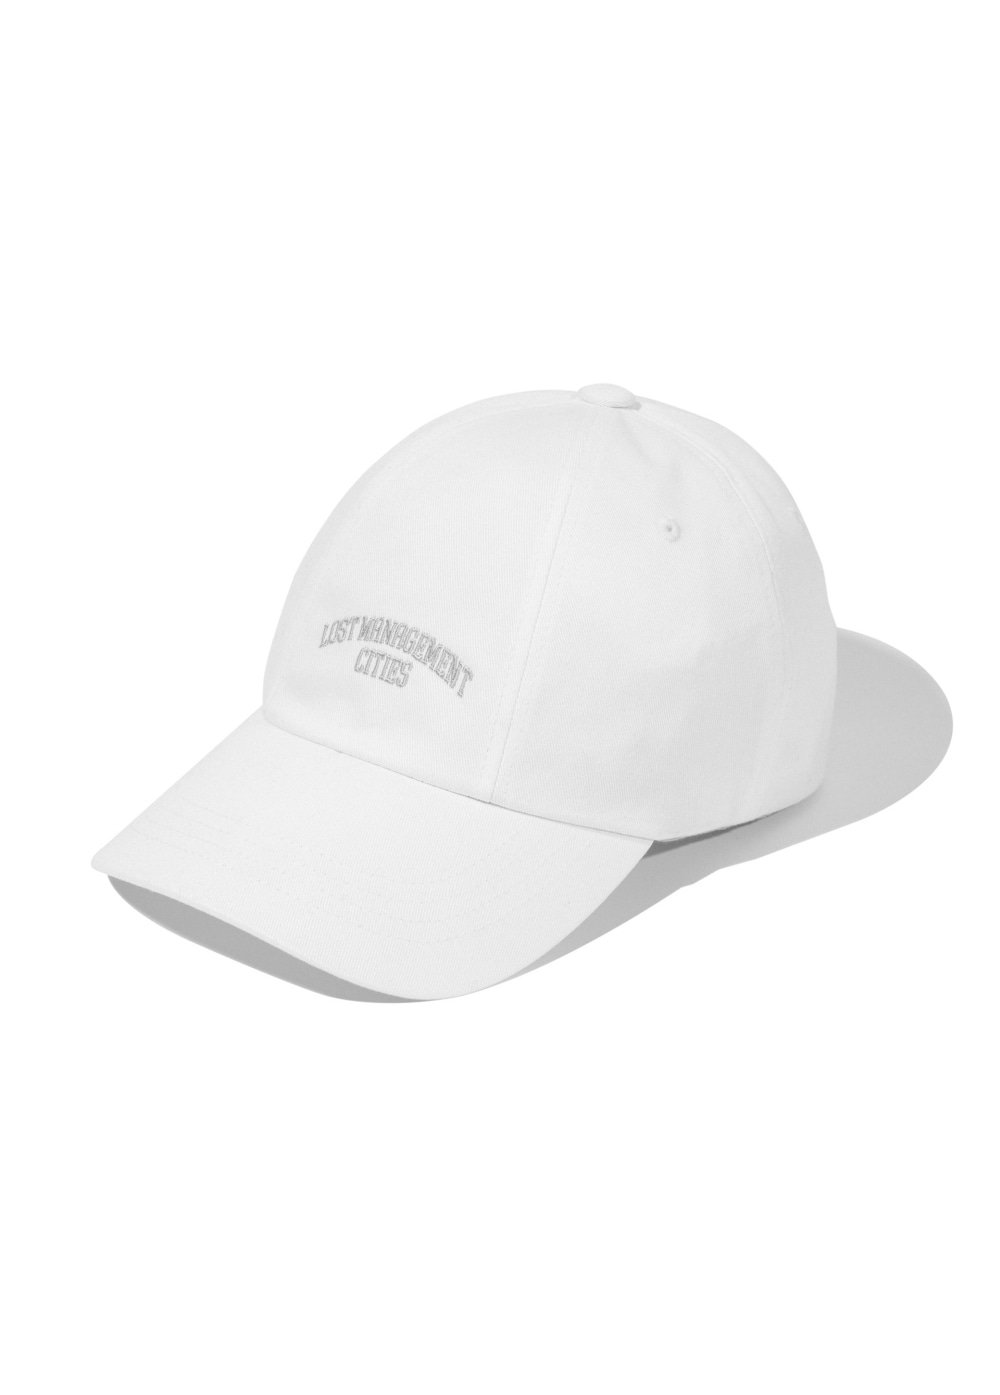 LMC RED LABEL ARCH FN ROTATE CAP white